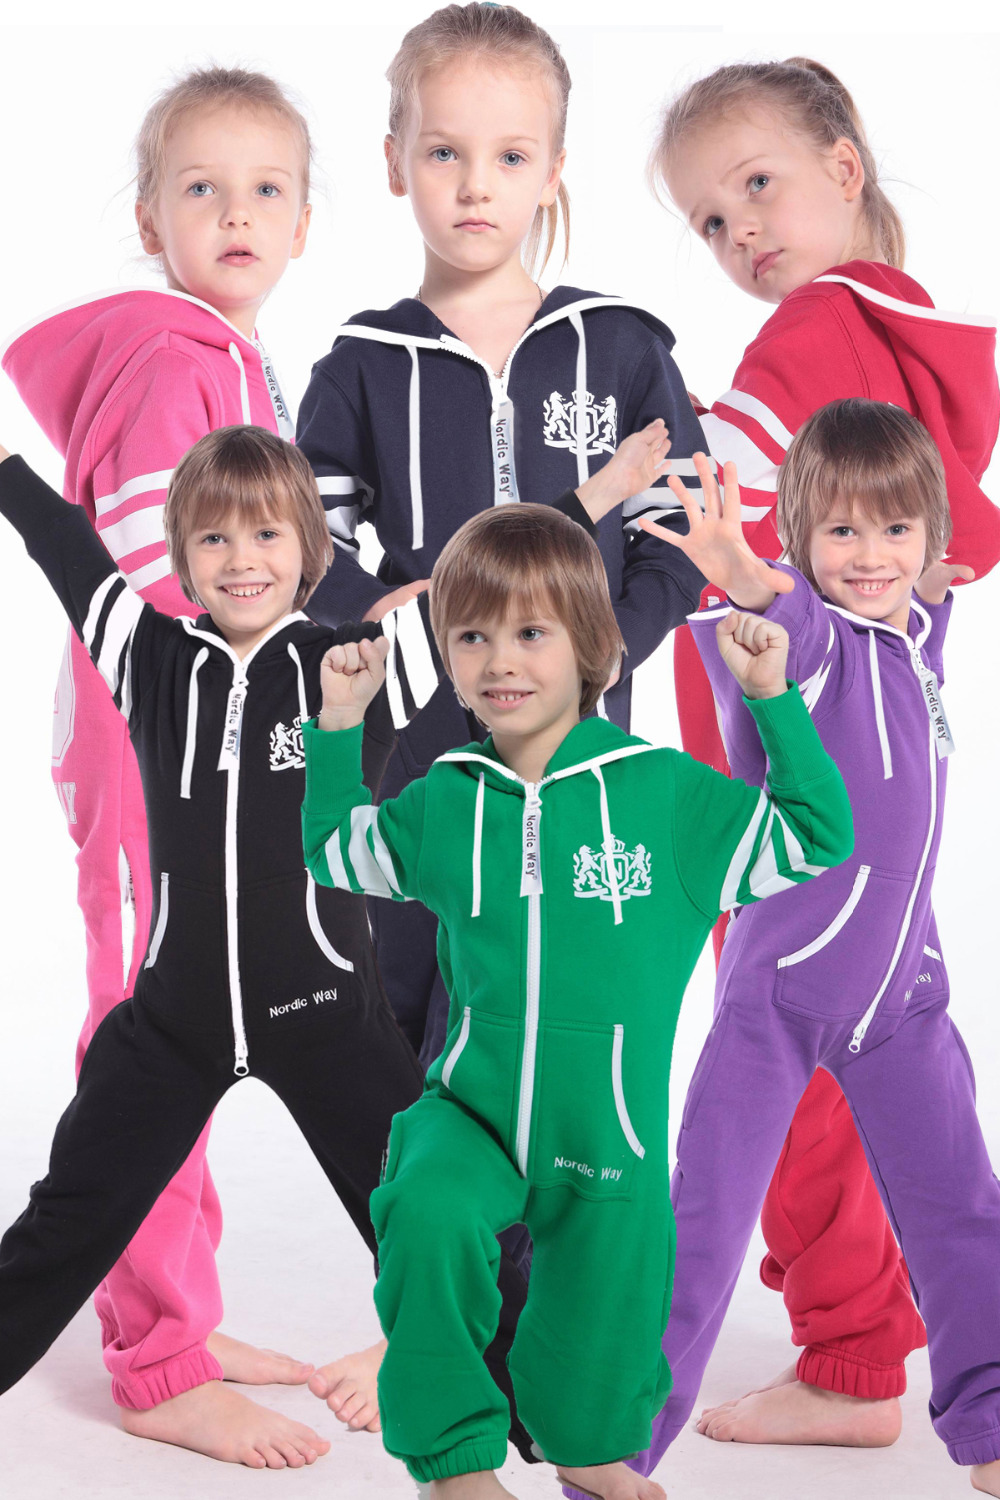 Nordic Way Printed One Piece Jumpusit All In One Fashion Kids Romper Hoody Fleece Overall цена 2017